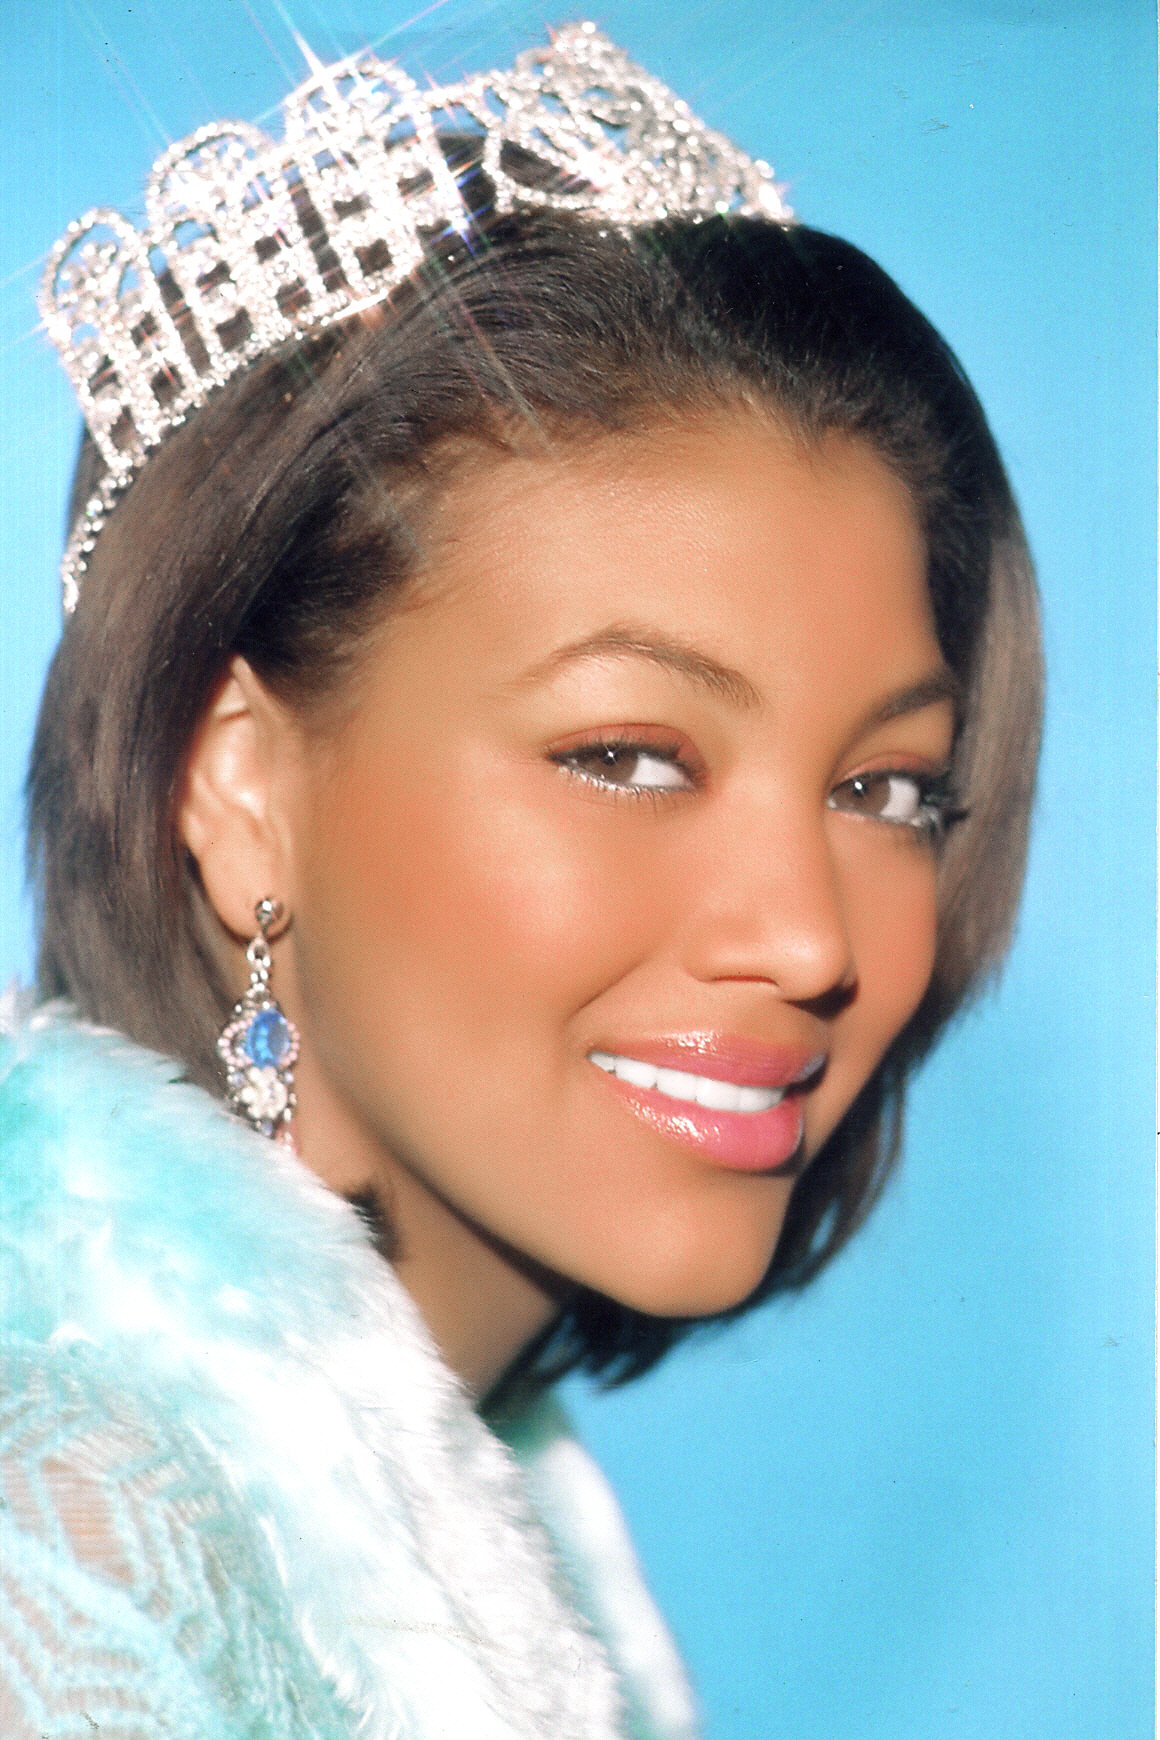 MISS SC TEEN USA --  BRITTANY SMITH